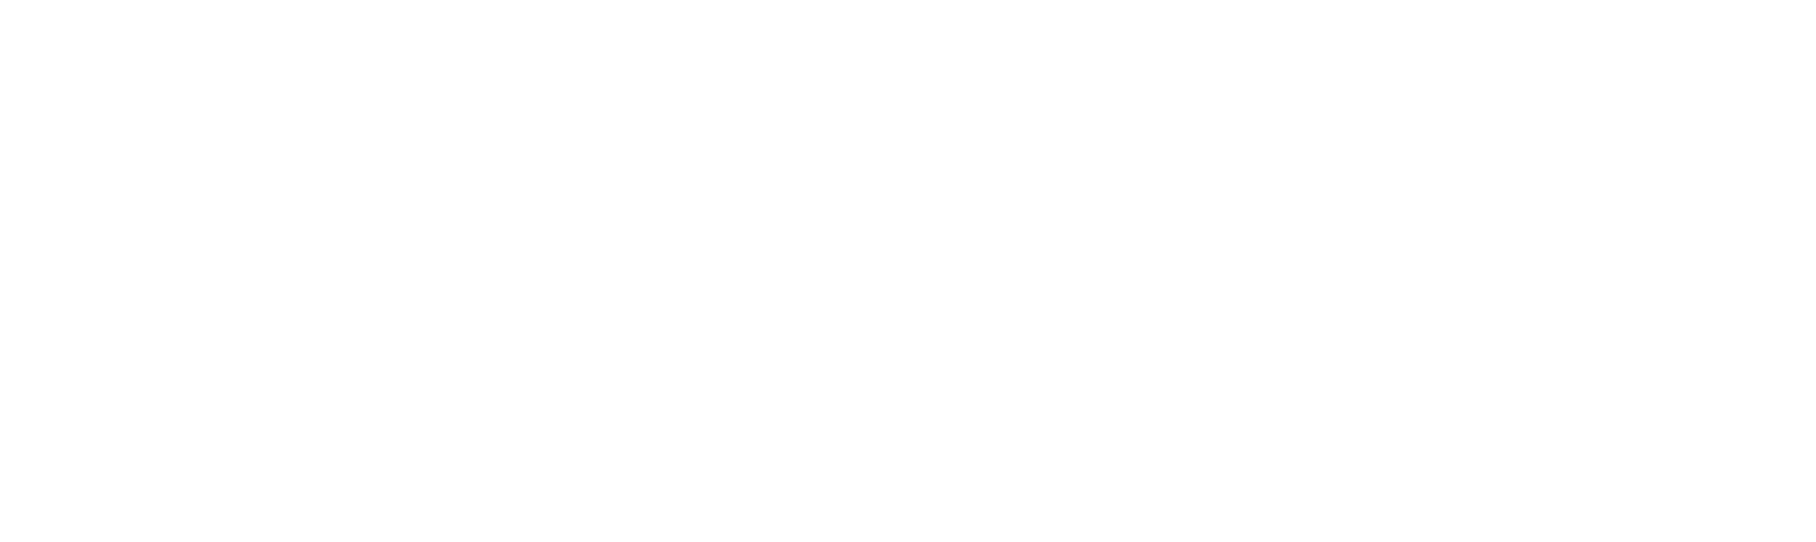 Full Universities Australia Logo